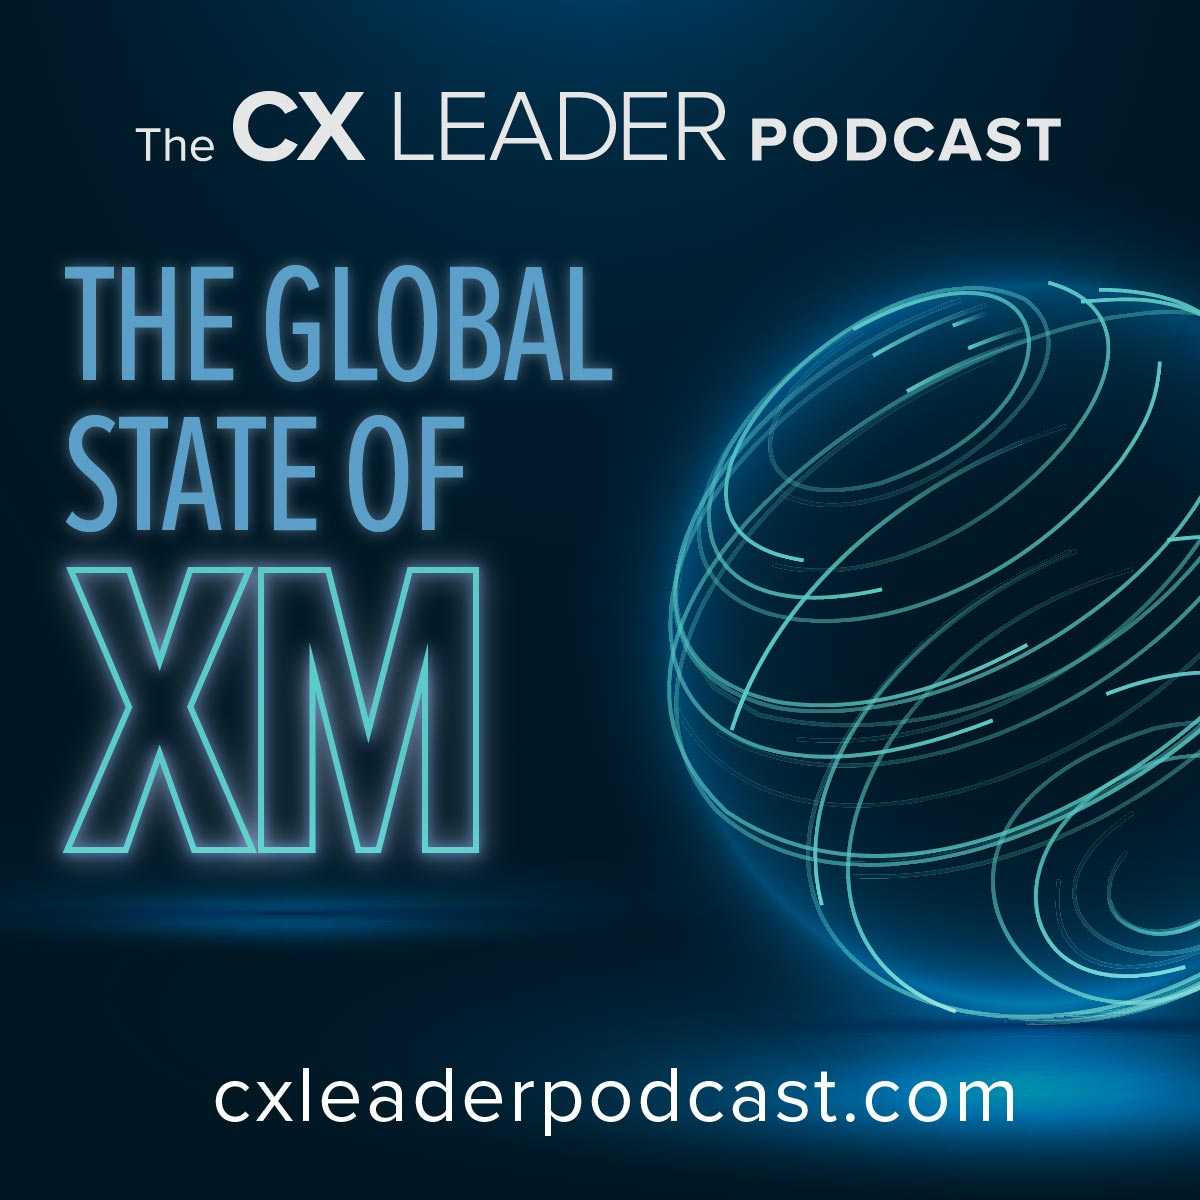 The Global State of XM